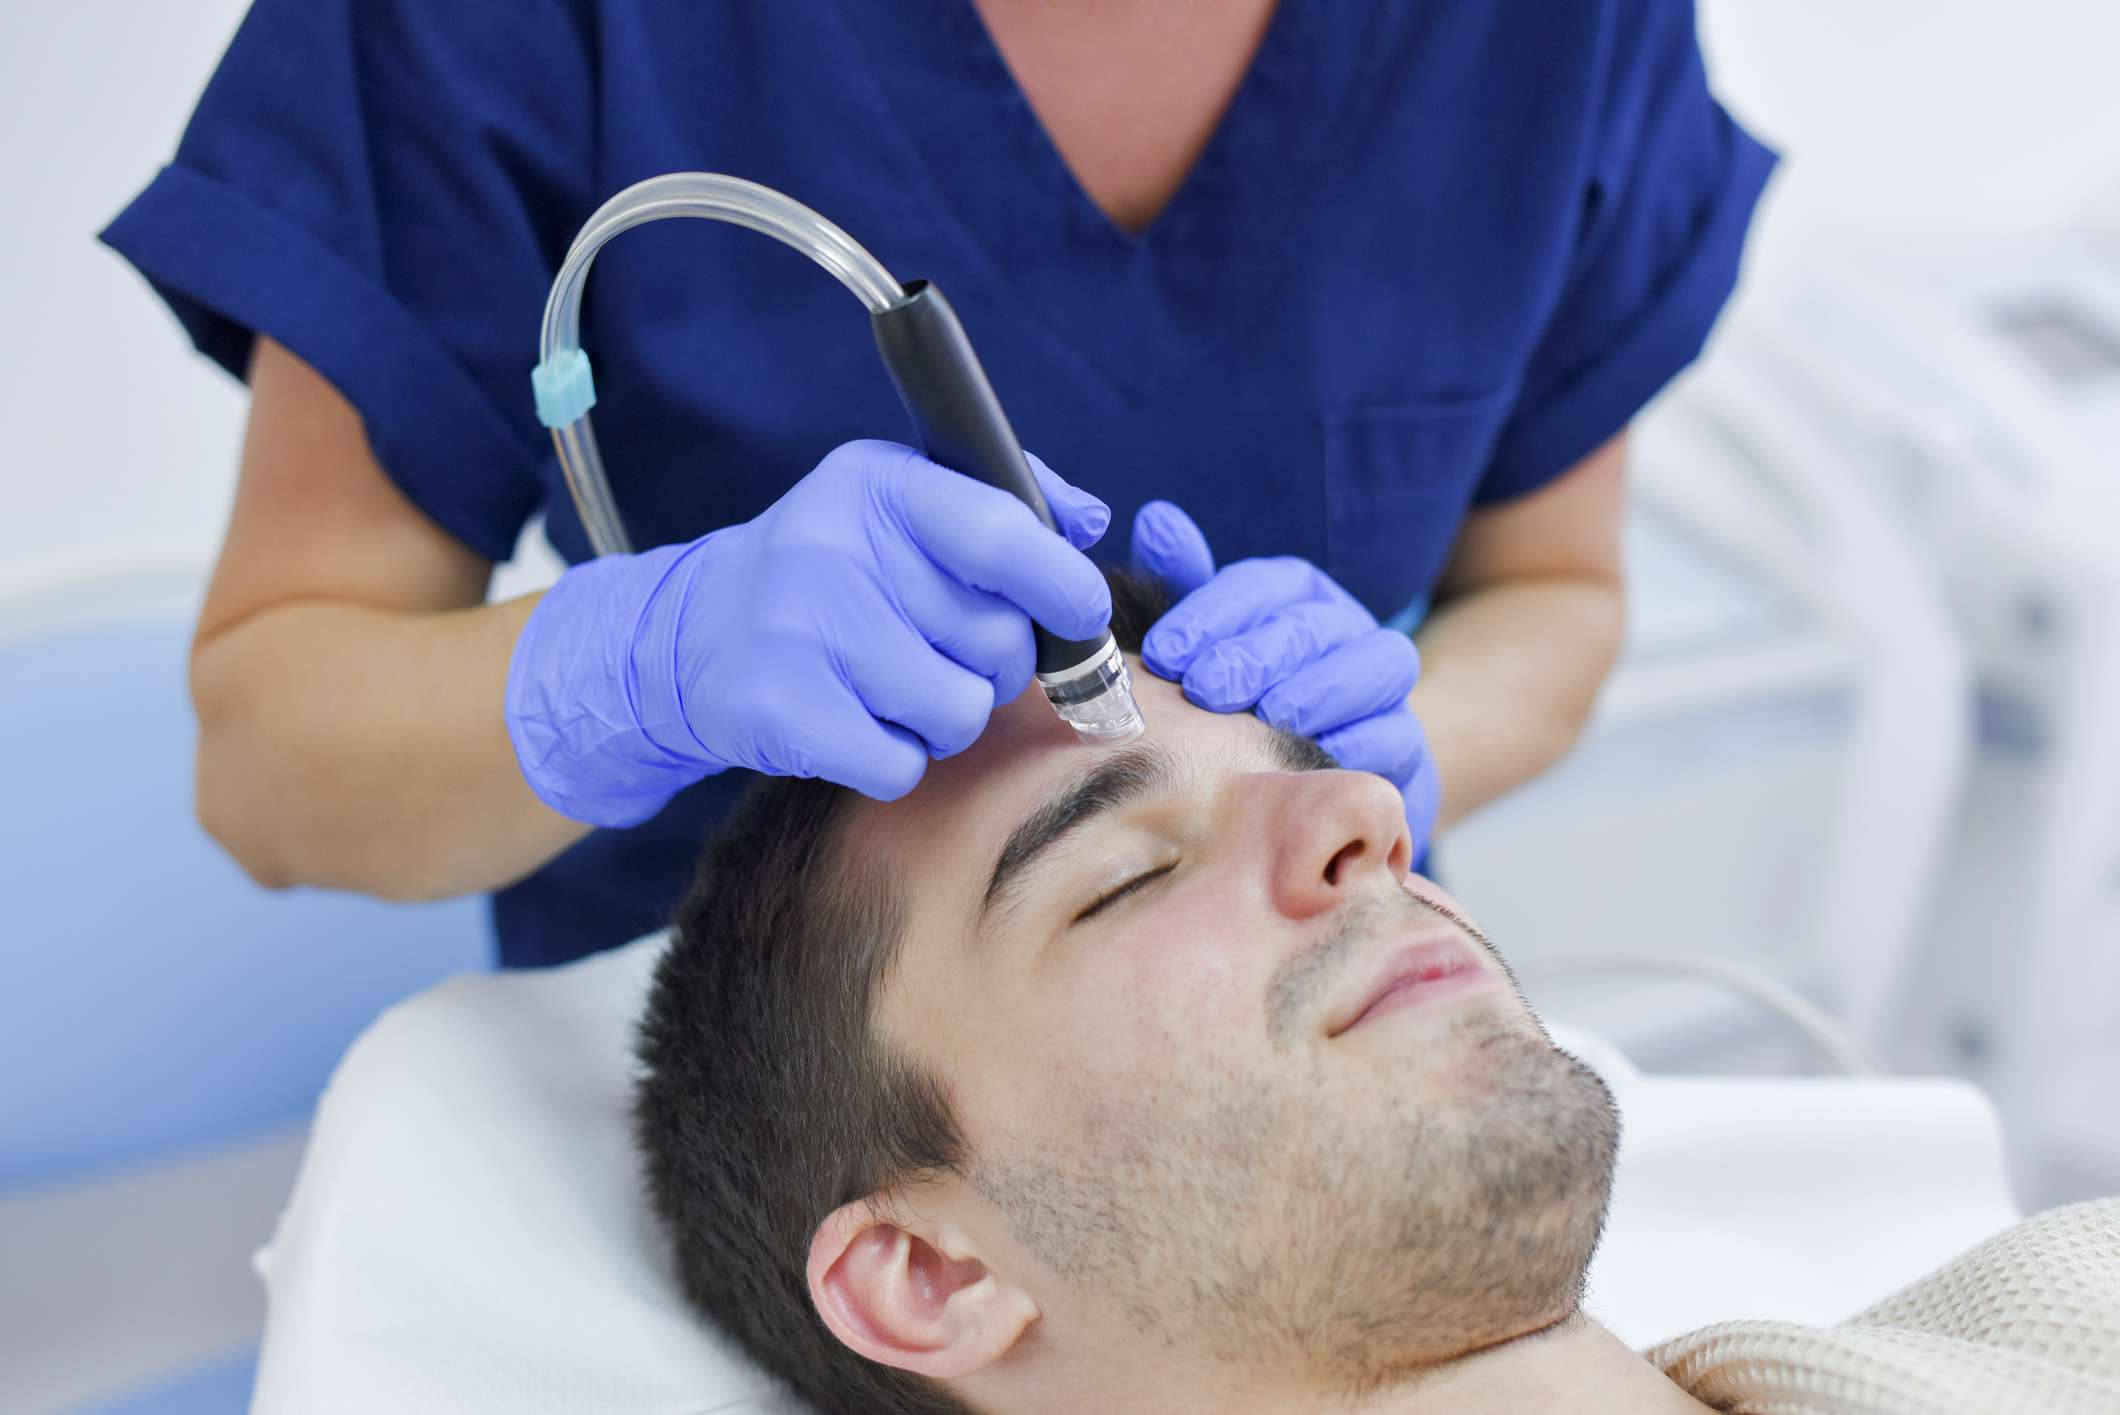 Dermatologist performing treatment on patient